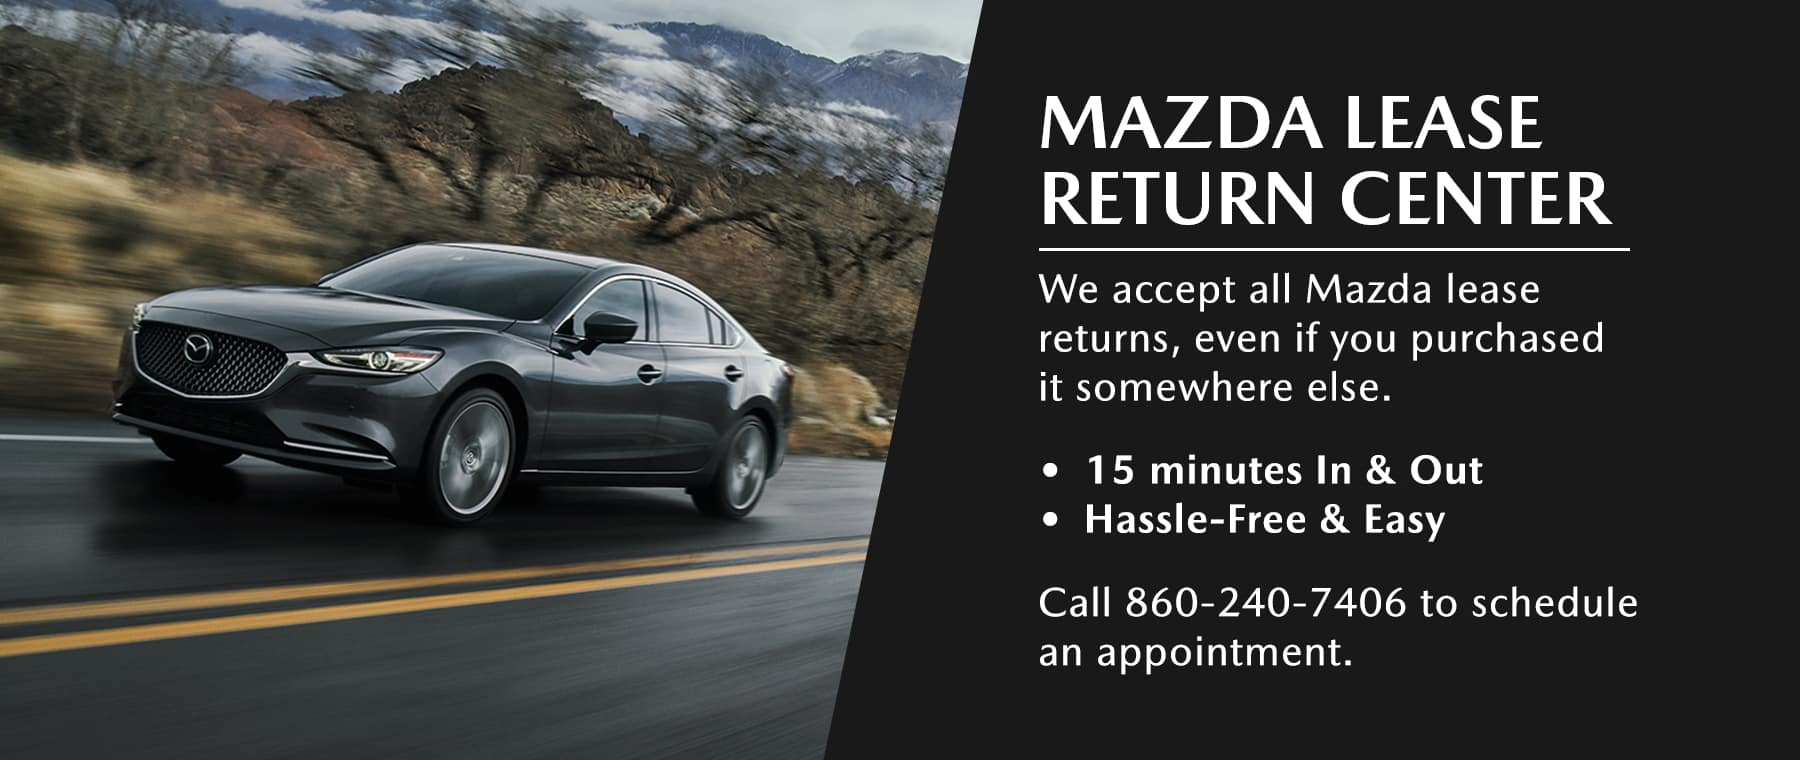 EAG_Mazda_Lease_Return_Center